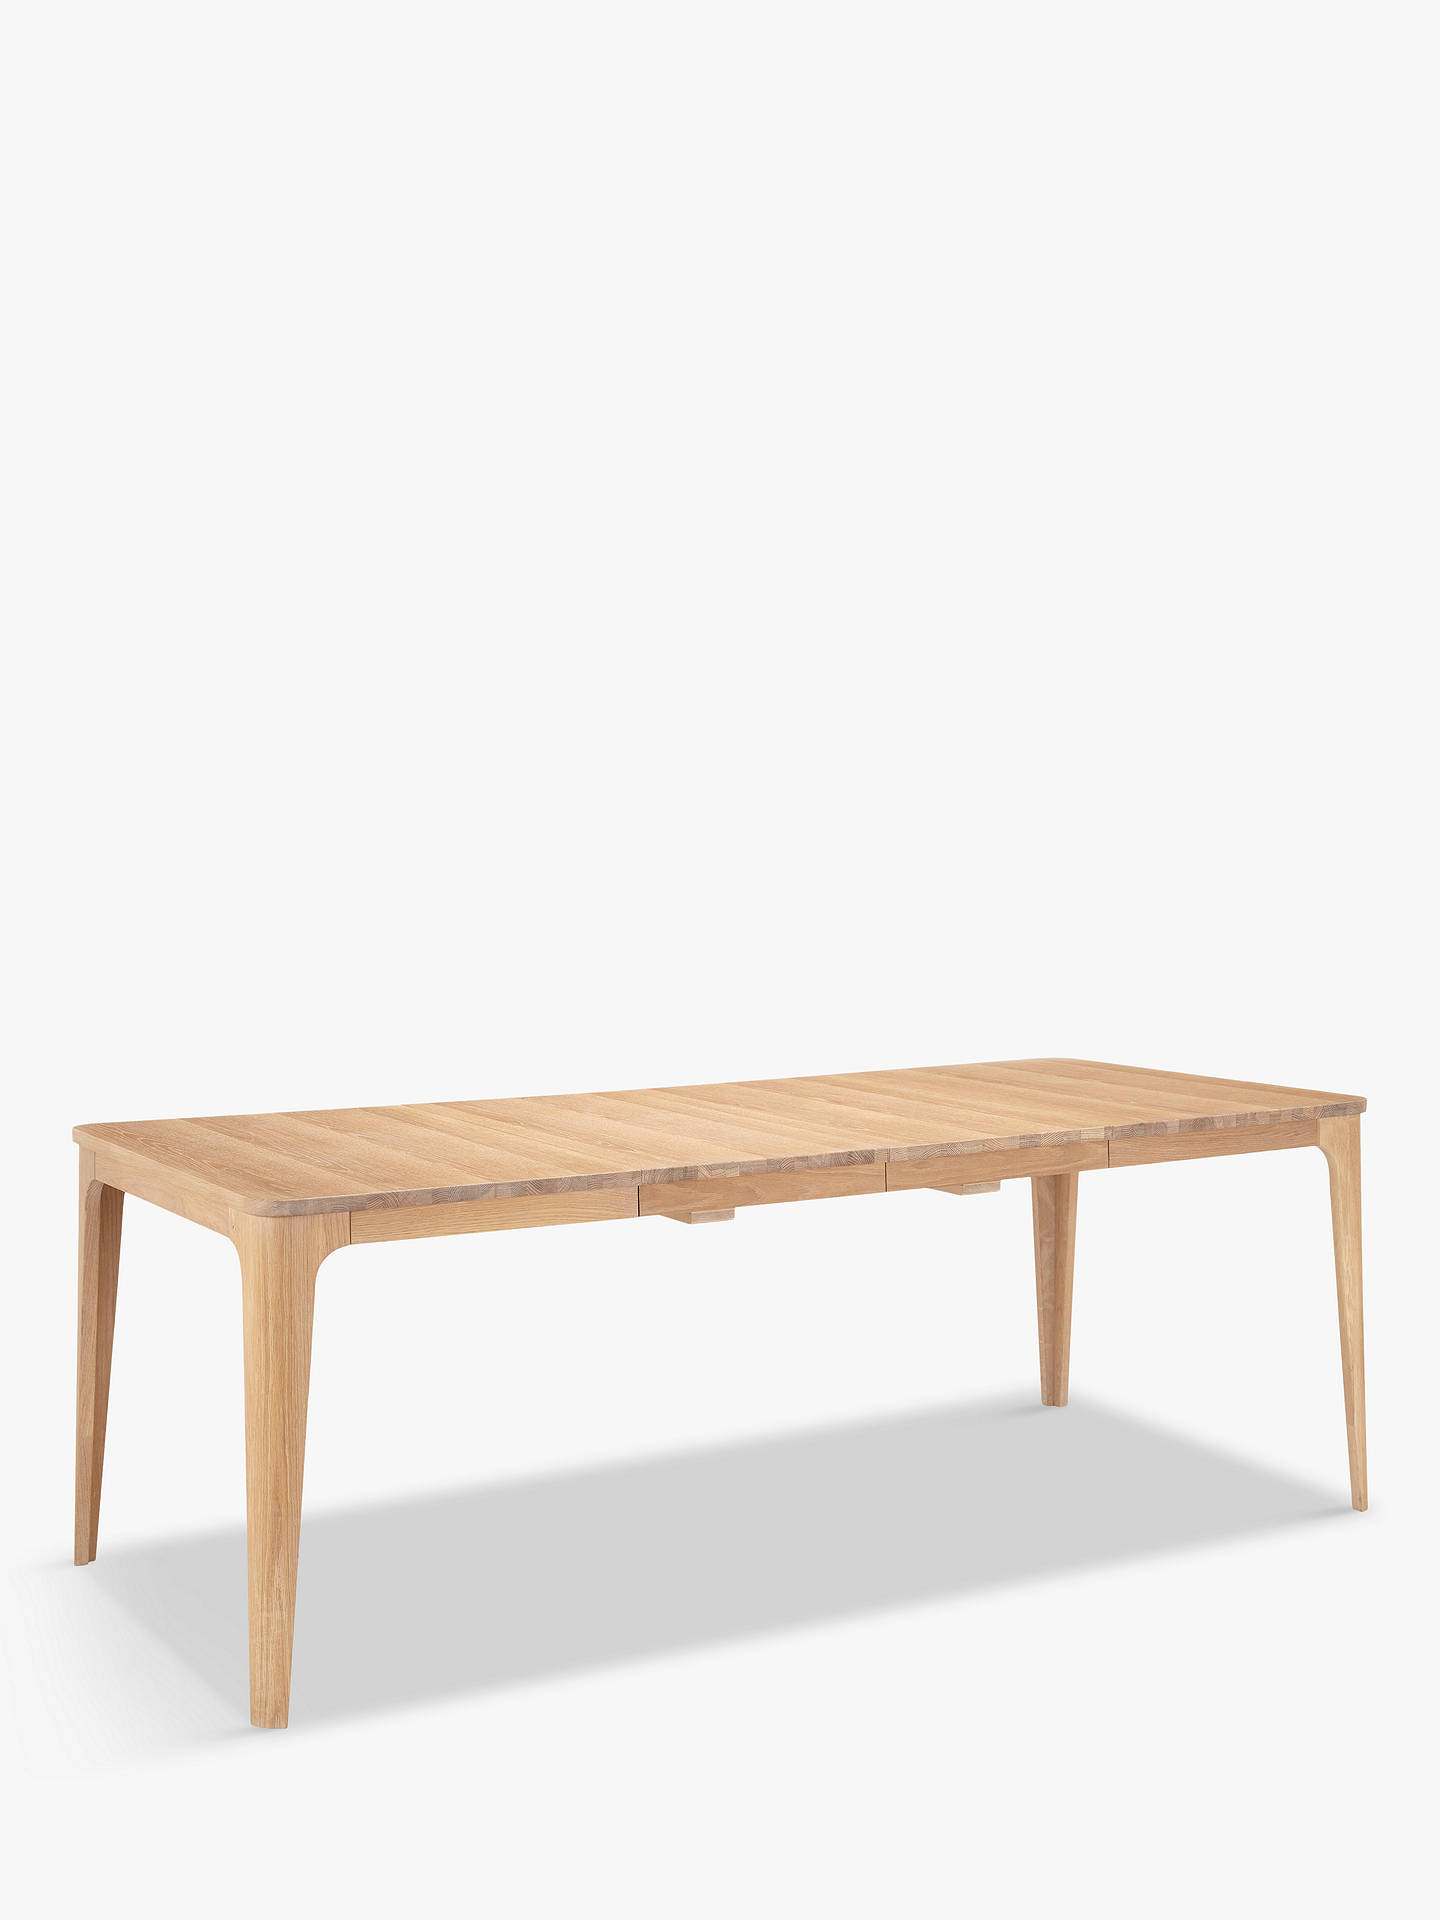 BuyEbbe Gehl for John Lewis Mira 4-8 Seater Extending Dining Table Online at johnlewis.com